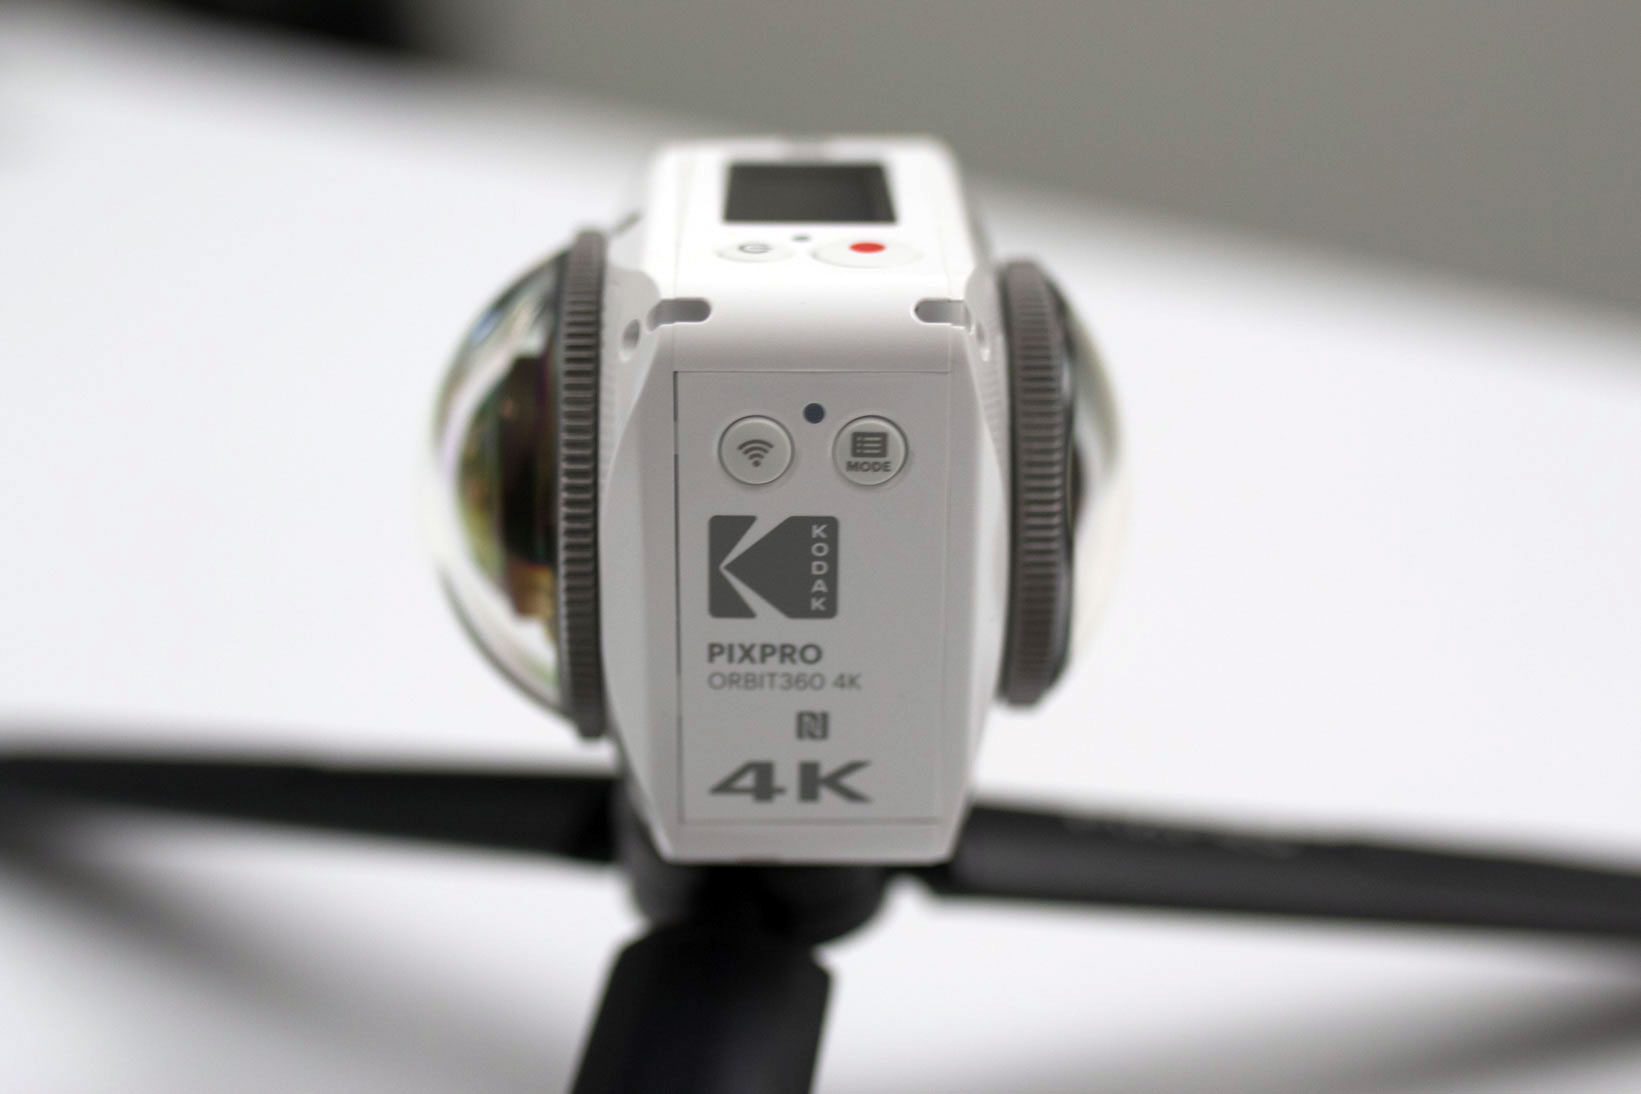 Kodak PIXPR0 Orbit360 4K review: Pros, cons and problems with the